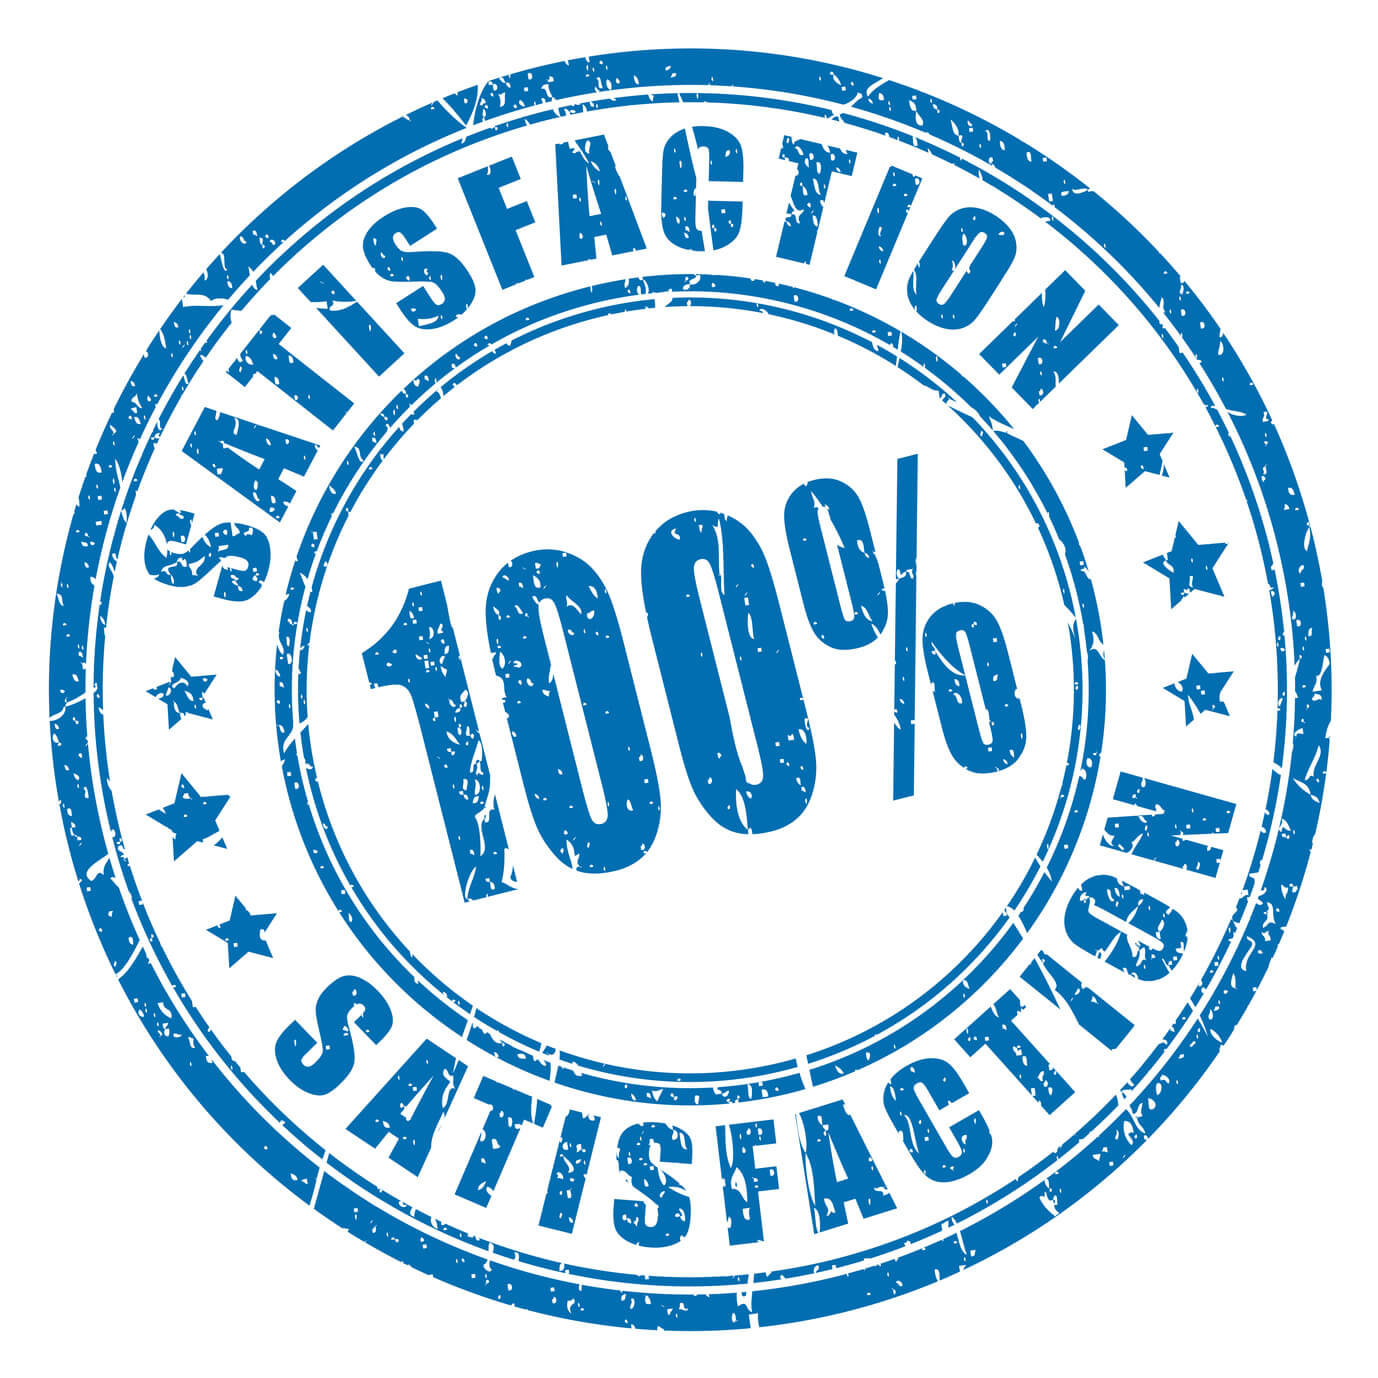 100-satisfaction-guarantee-stamp.jpg